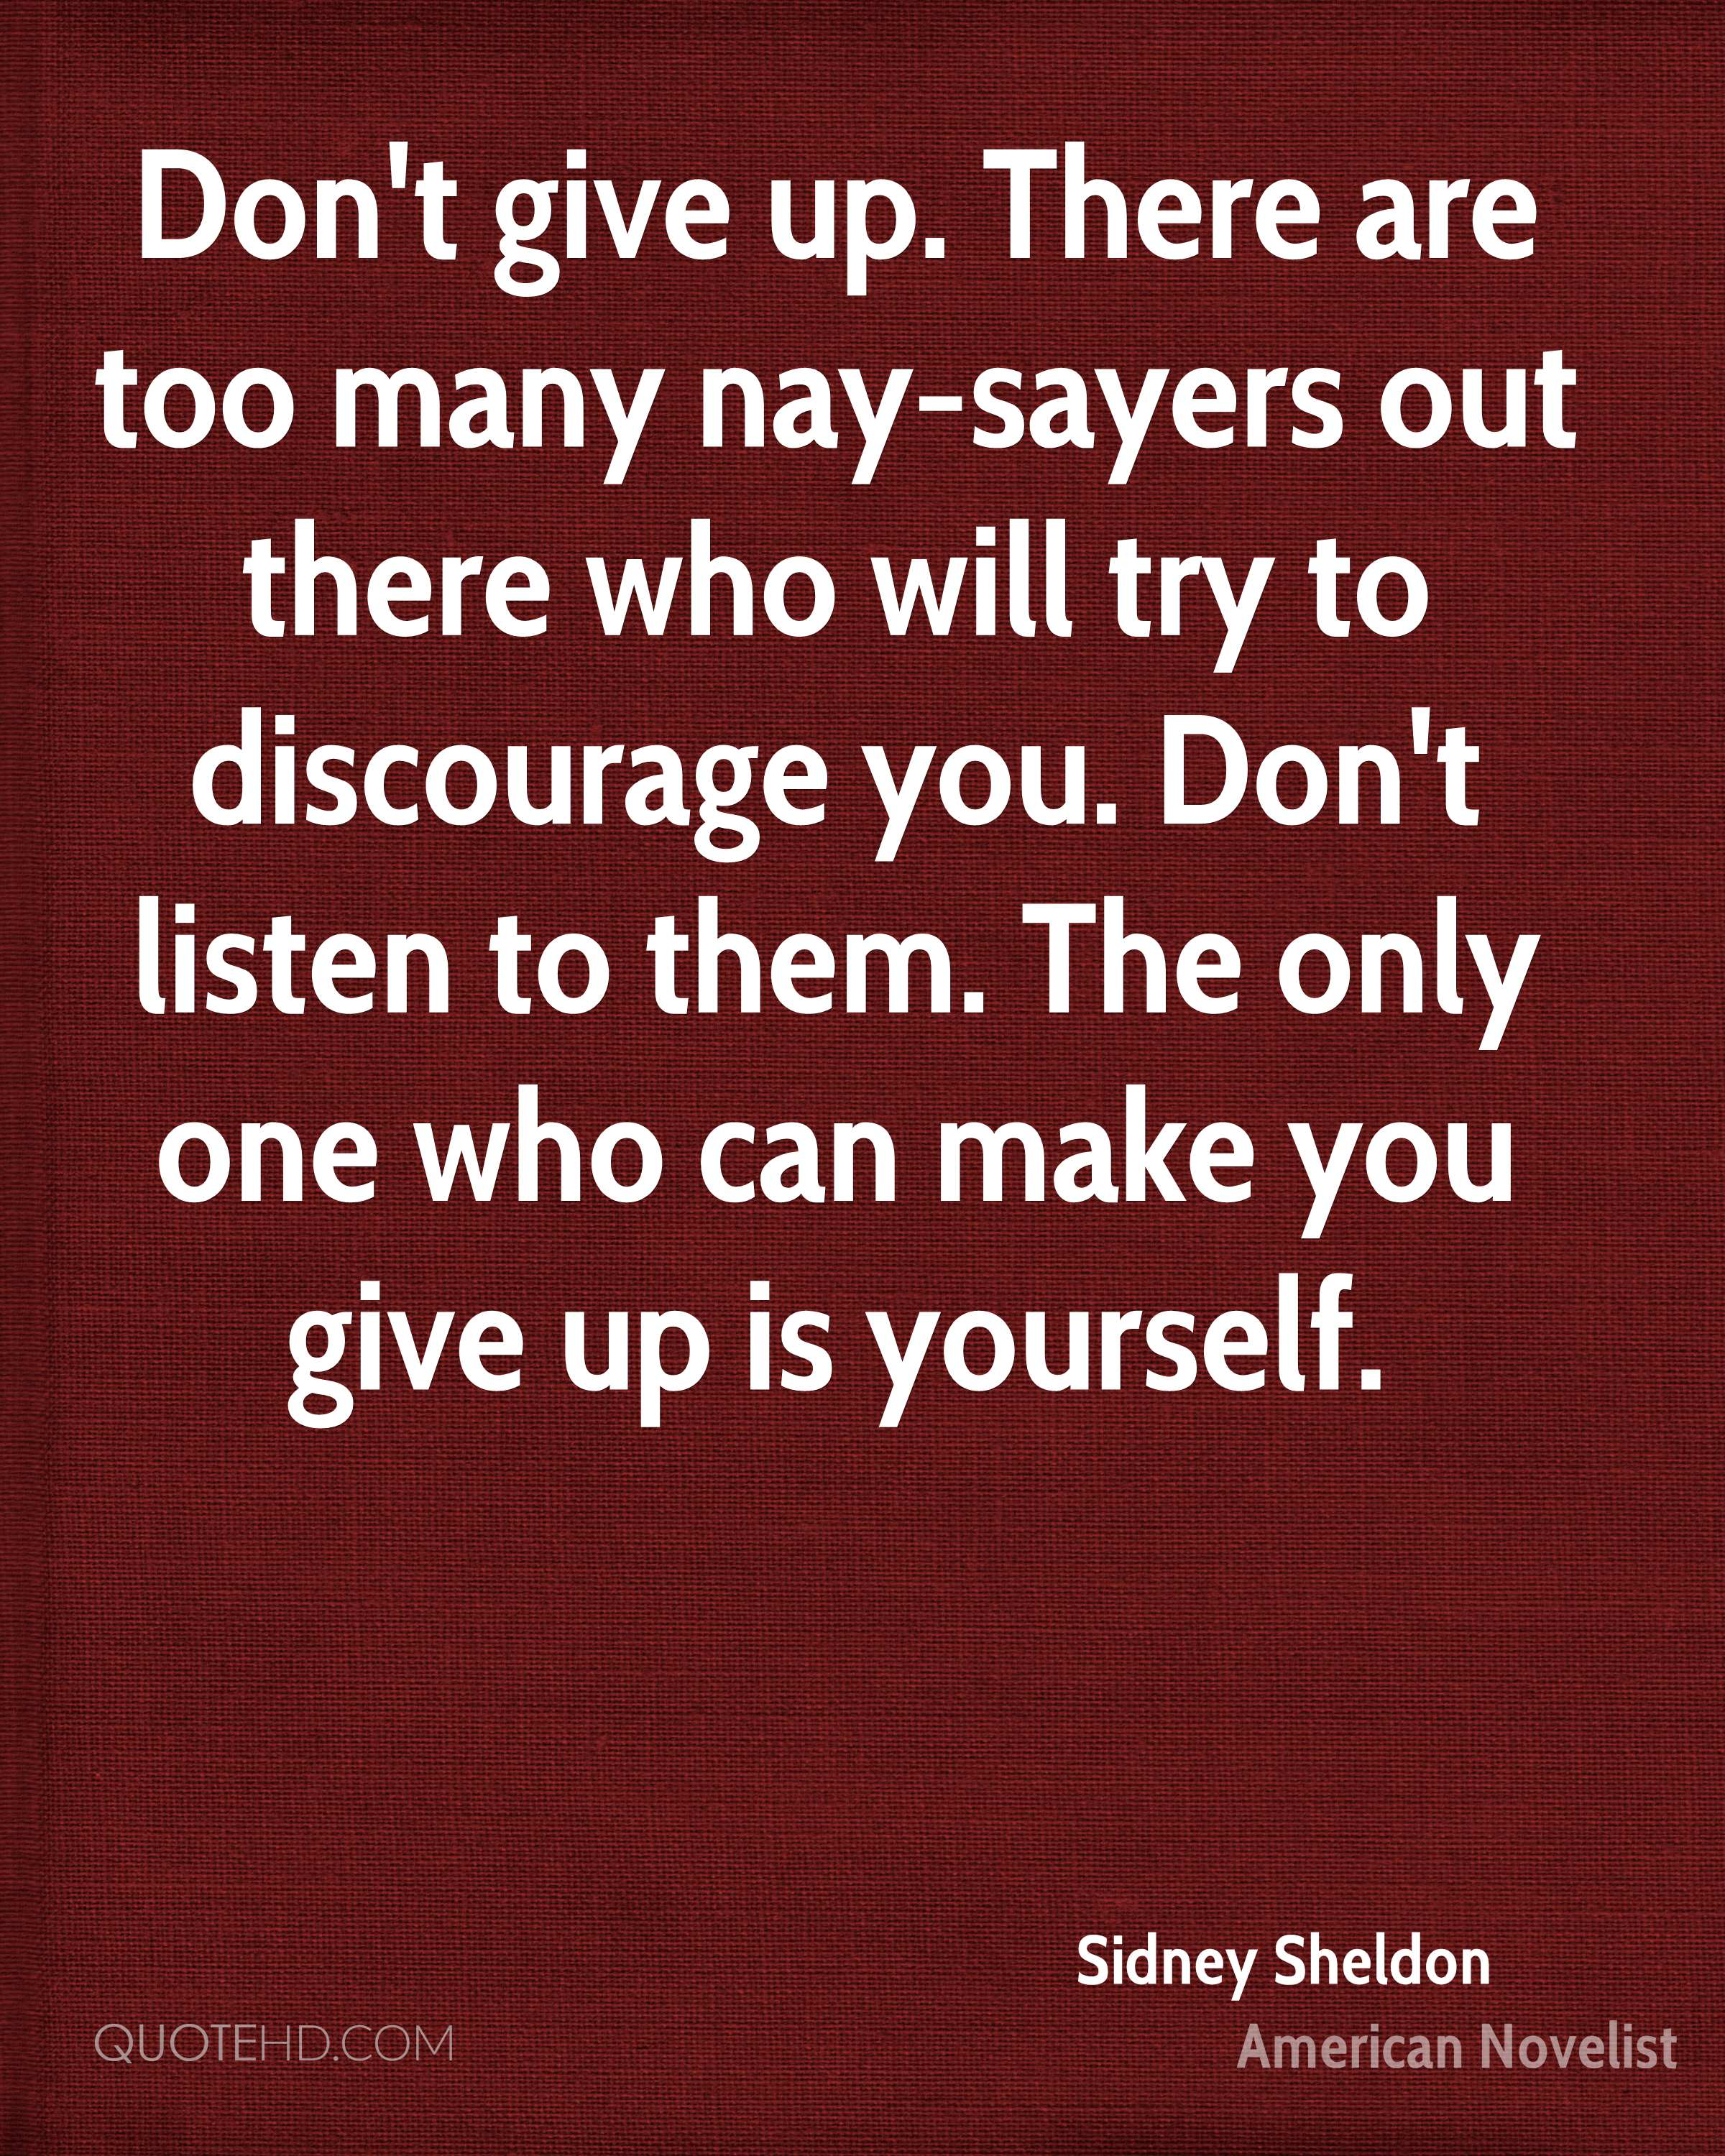 Don't give up. There are too many nay-sayers out there who will try to discourage you. Don't listen to them. The only one who can make you give up is yourself.